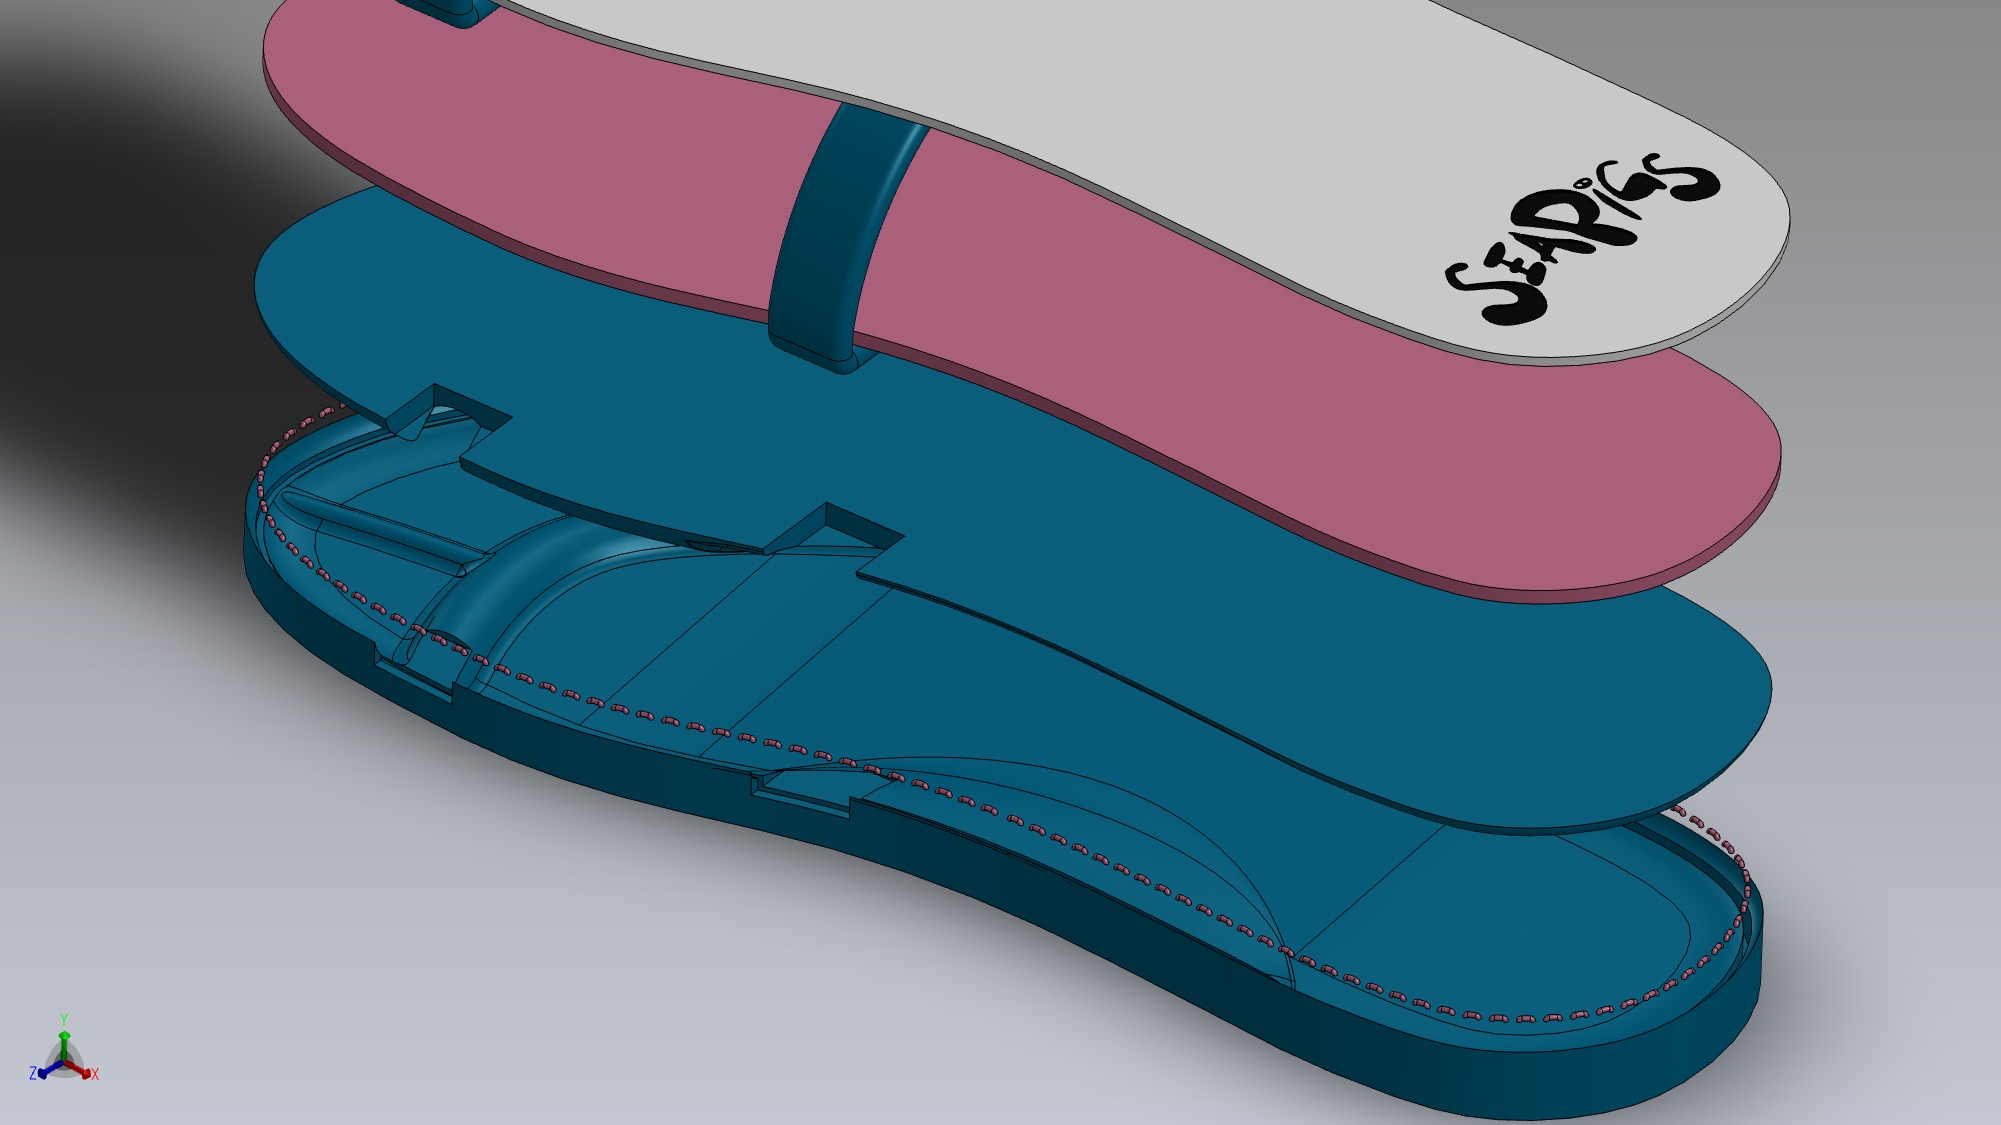 Four-layer exploded view of the SeaPigs Drifters 4 layer sole technology